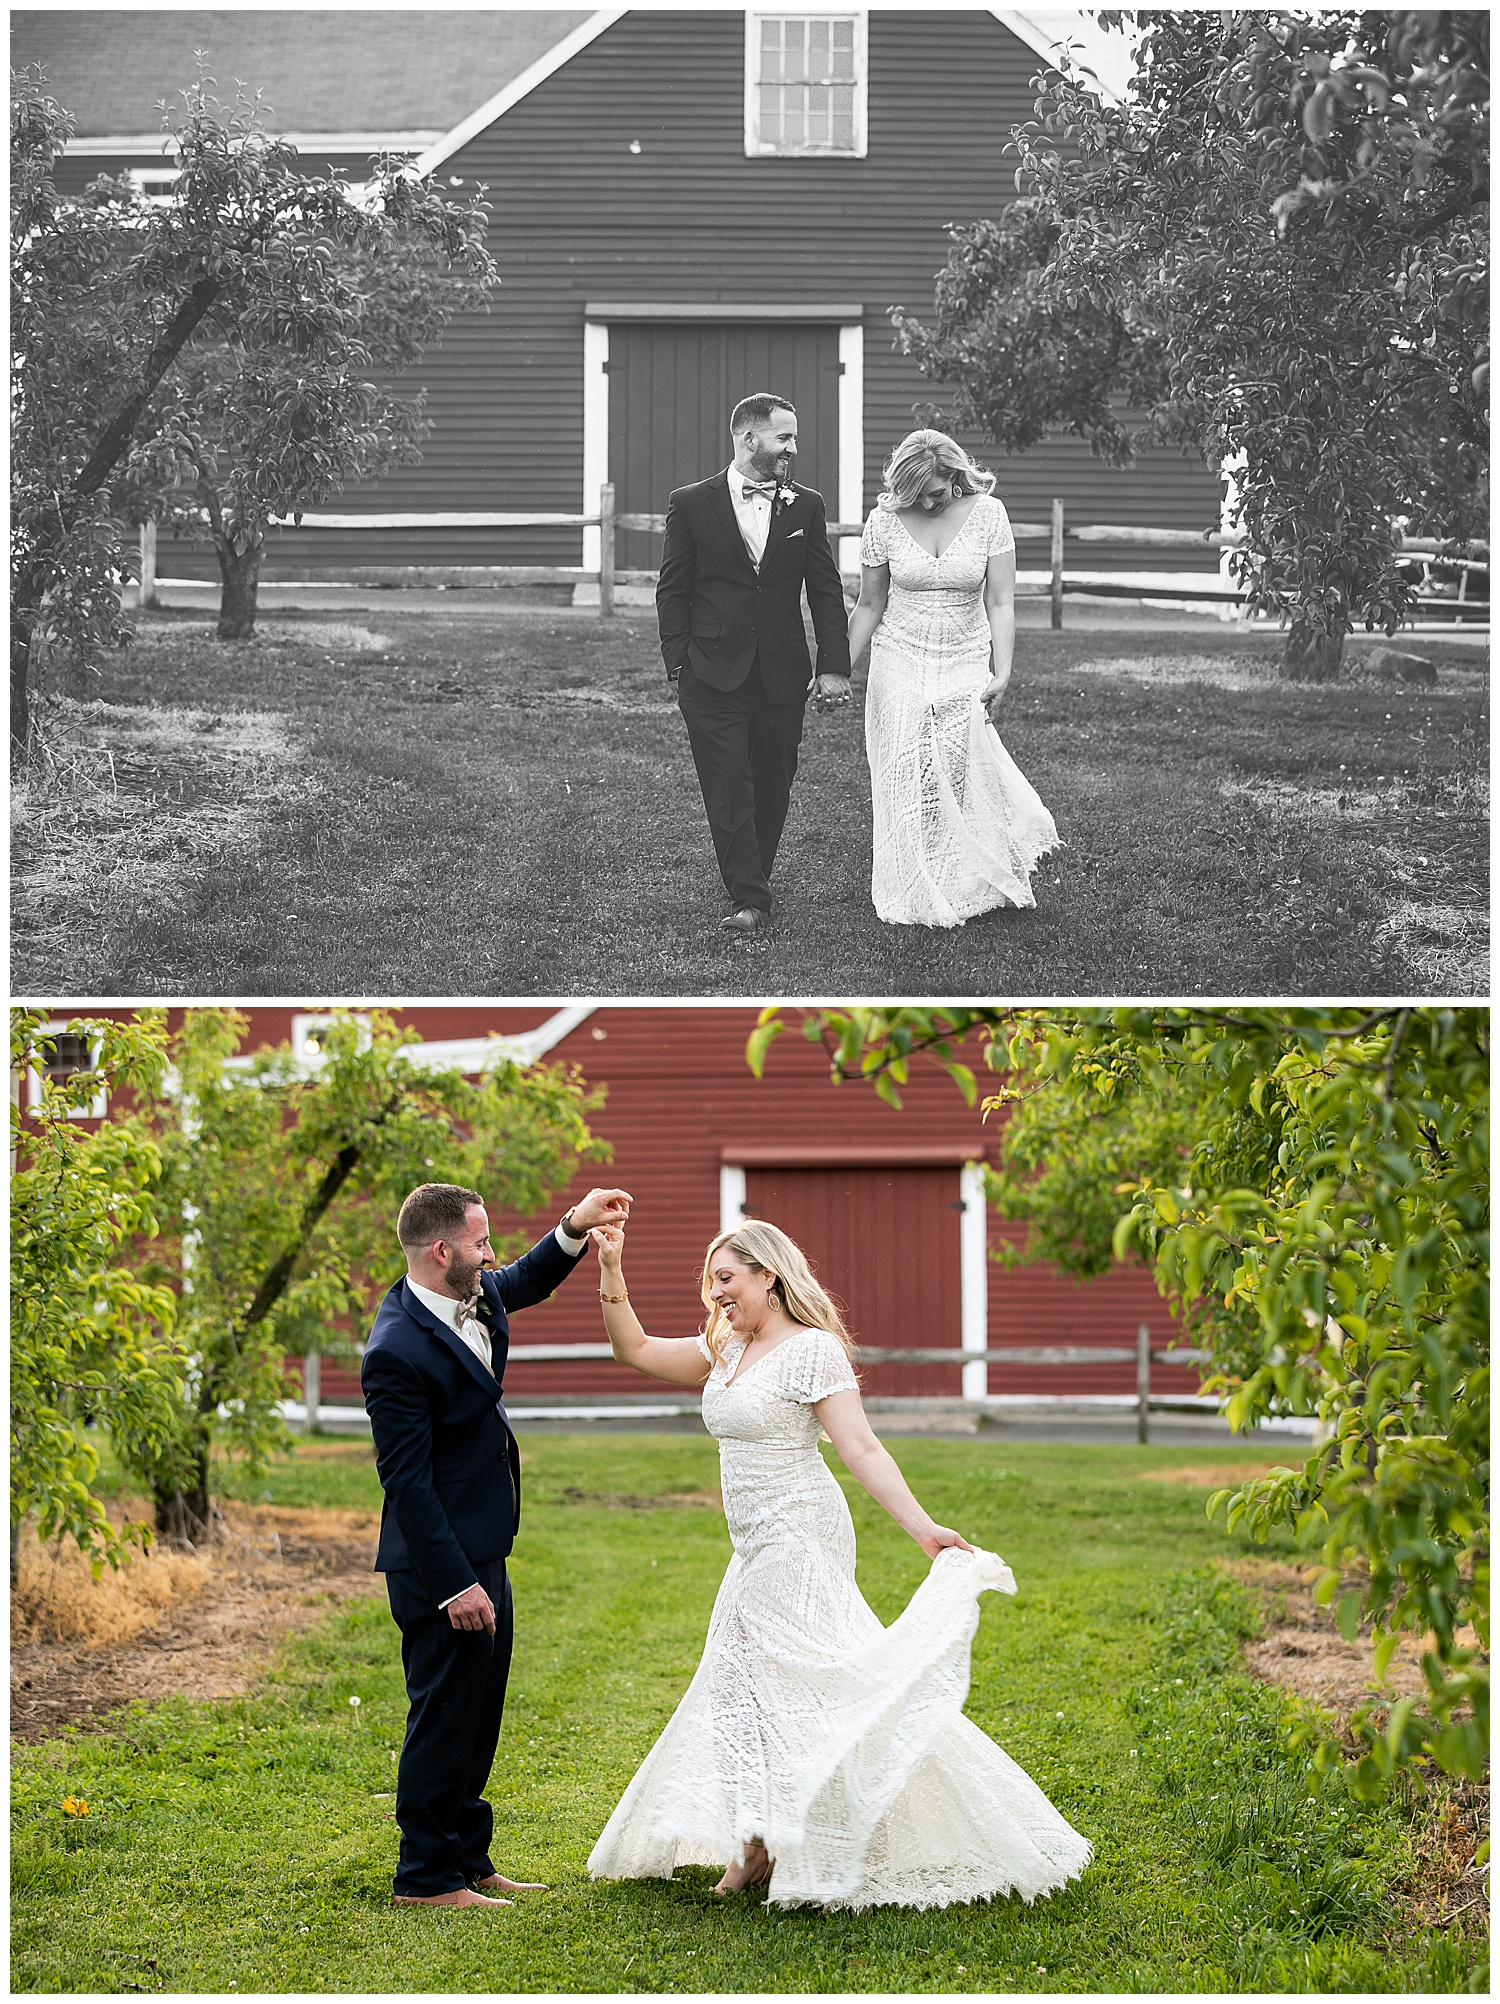 Bride & Groom,social media,